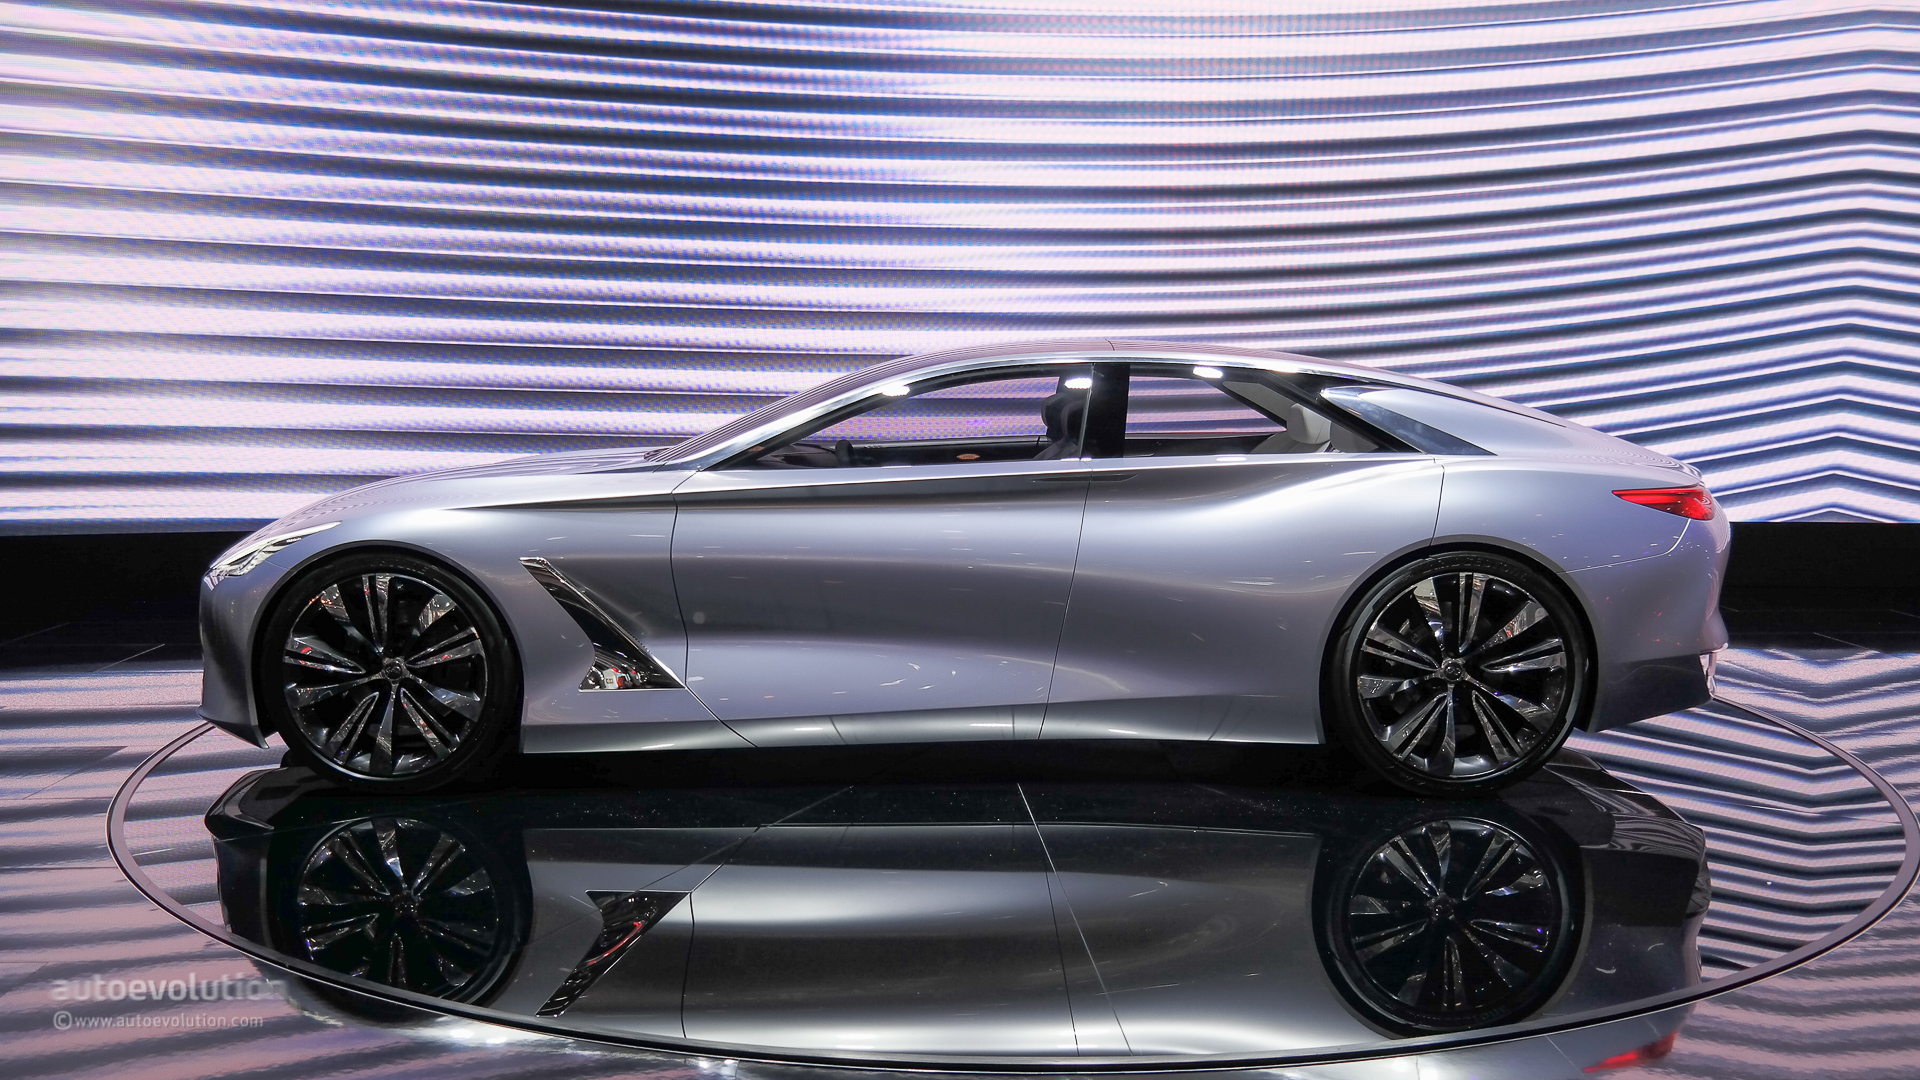 Safest Motorcycle Helmet >> Stylish Infiniti Q80 Four-Door Coupe Demands Attention in ...